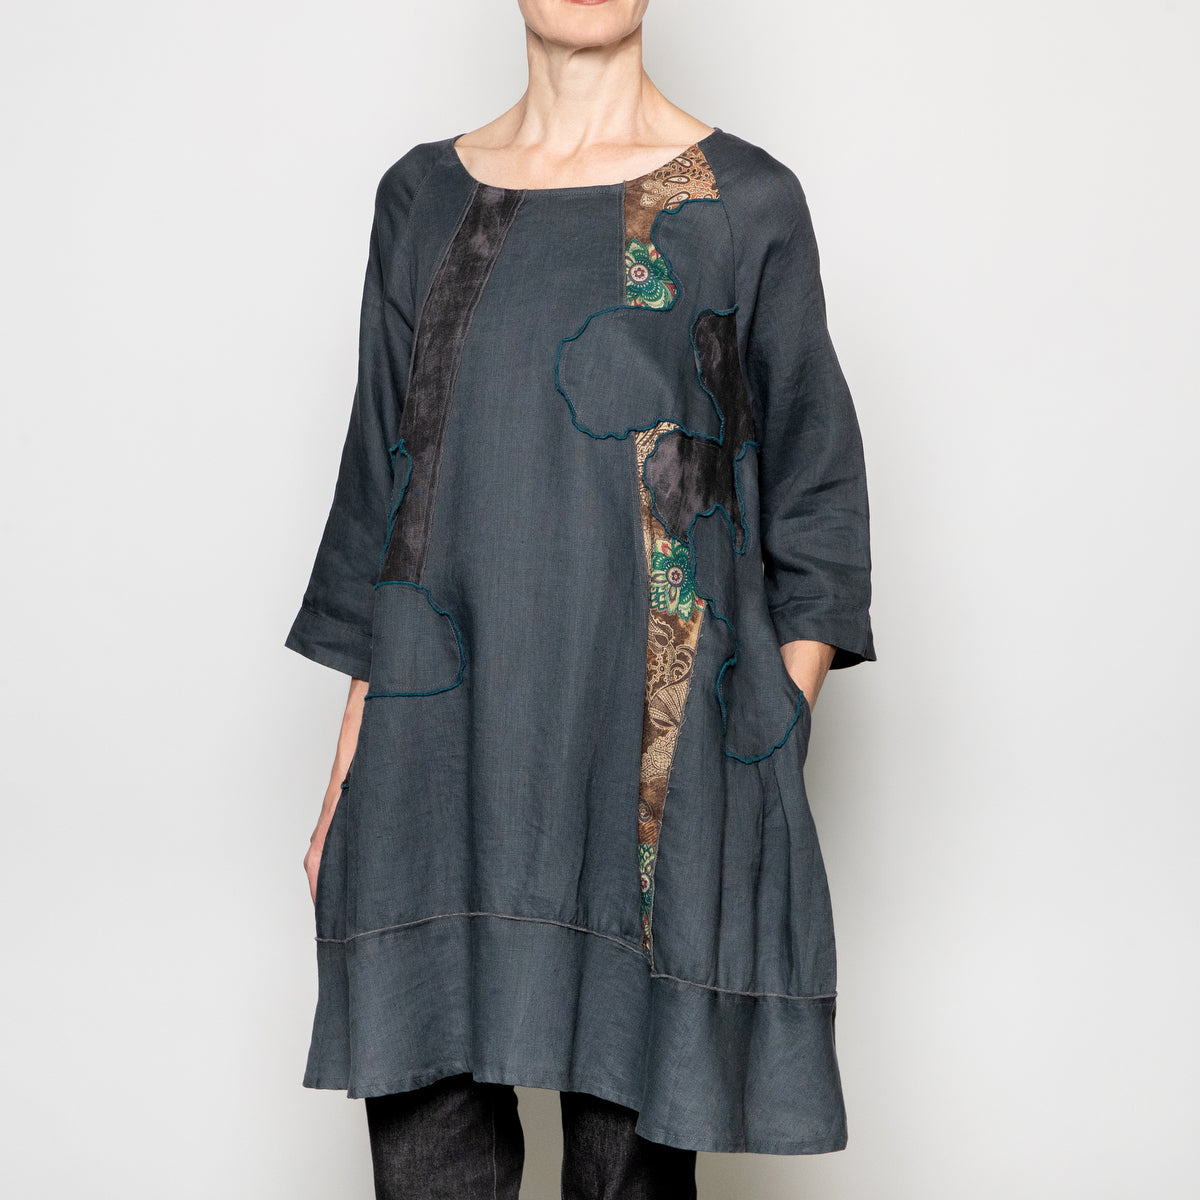 Peacock Ways Collage Tunic in Grey